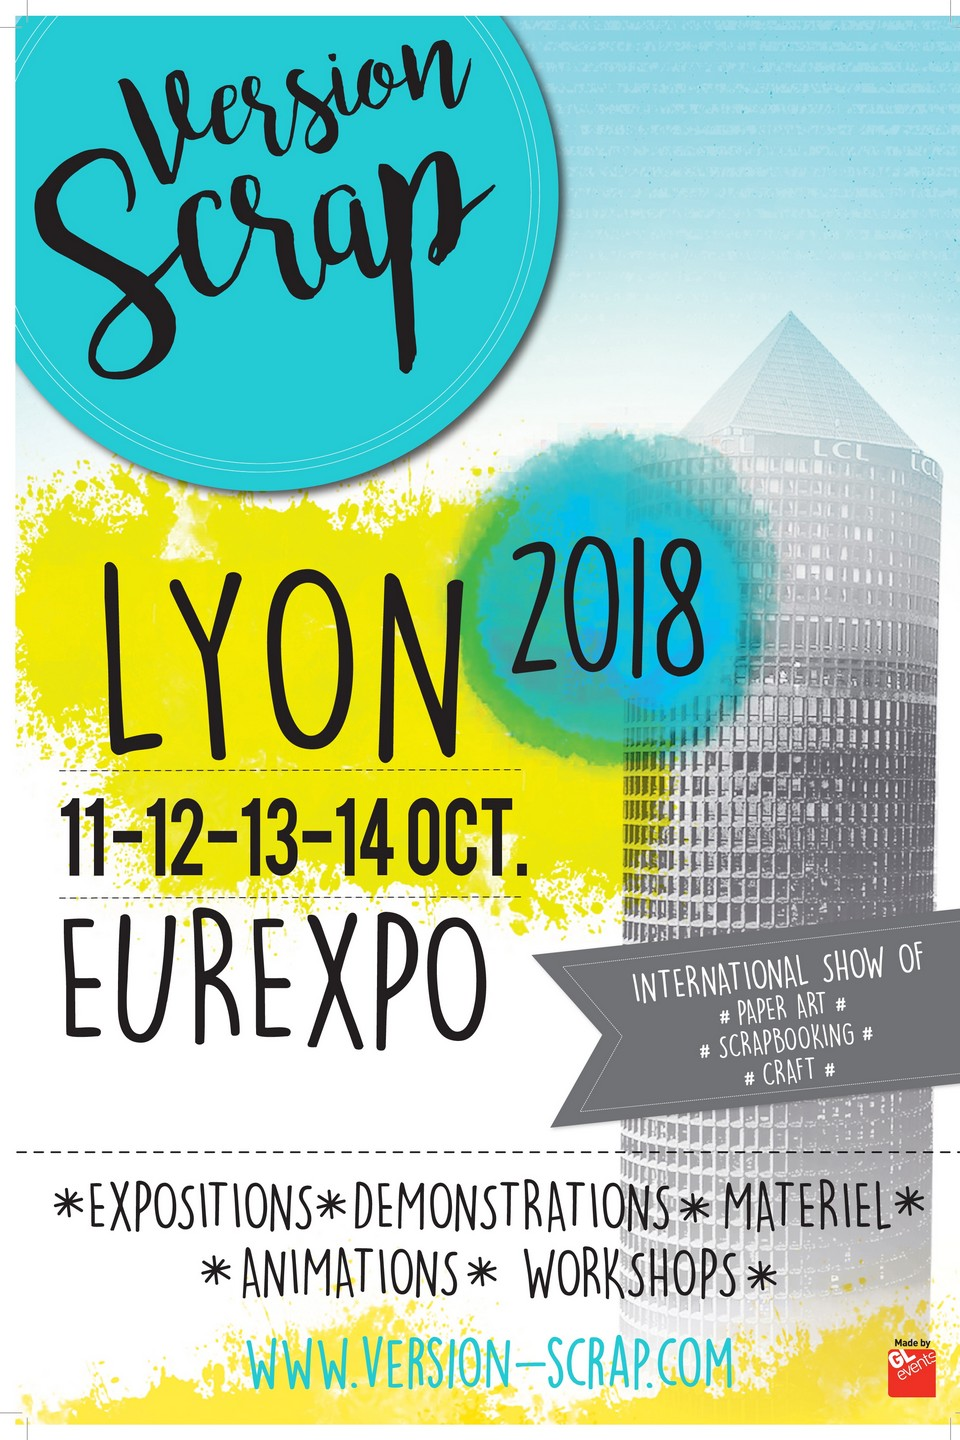 salon Version Scrap Lyon 2018 diy salon scrap scrapbooking les-kits-de-couleurs-en-folie kits mini-albums